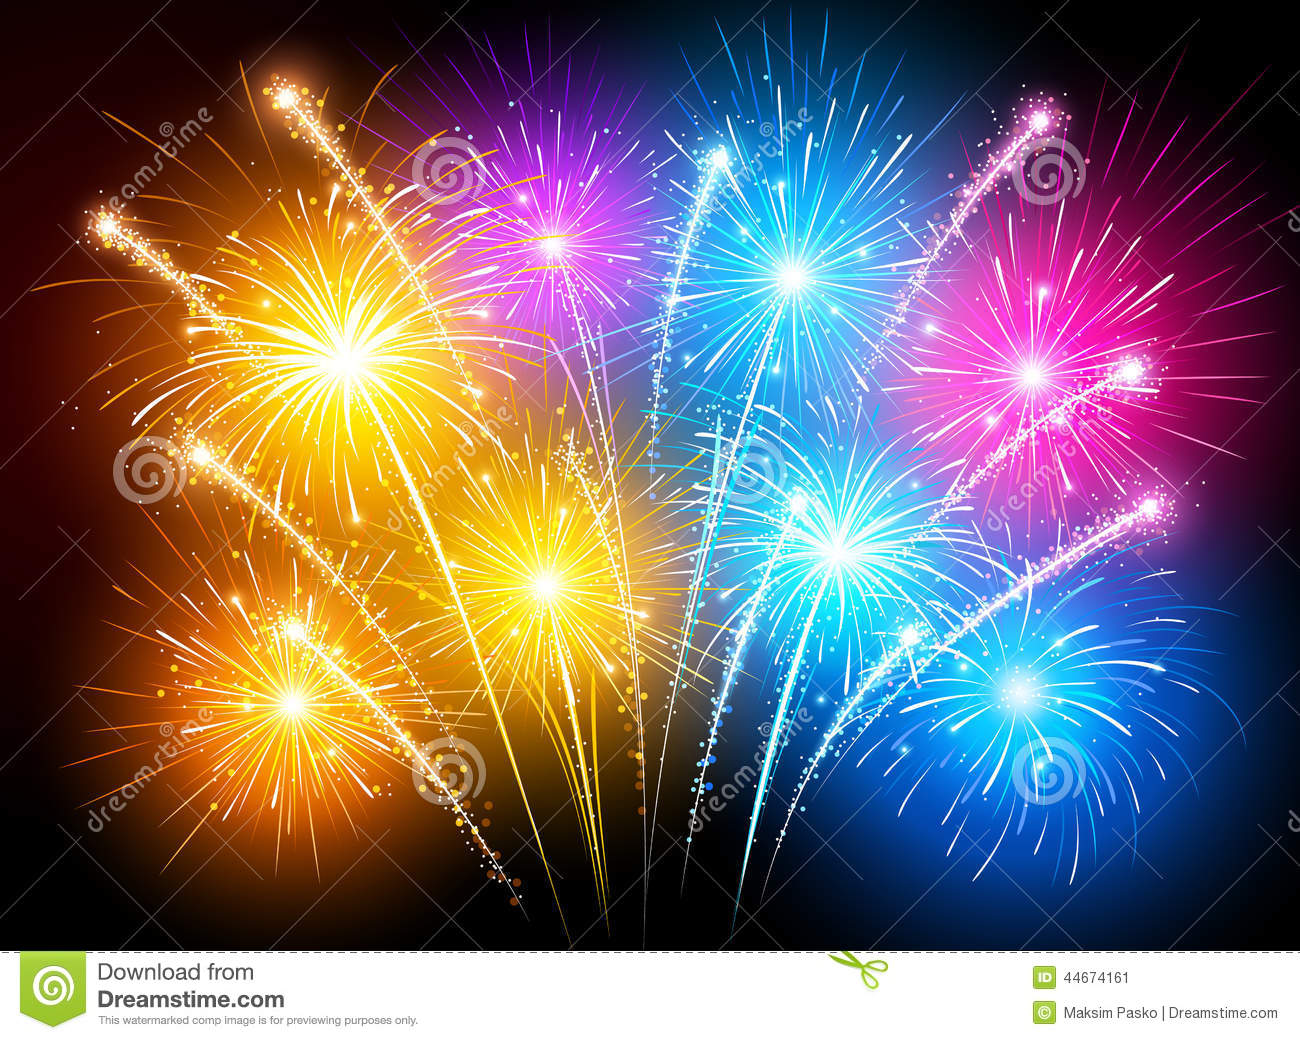 Night Sky 3d Wallpaper Colorful Fireworks Stock Vector Image 44674161